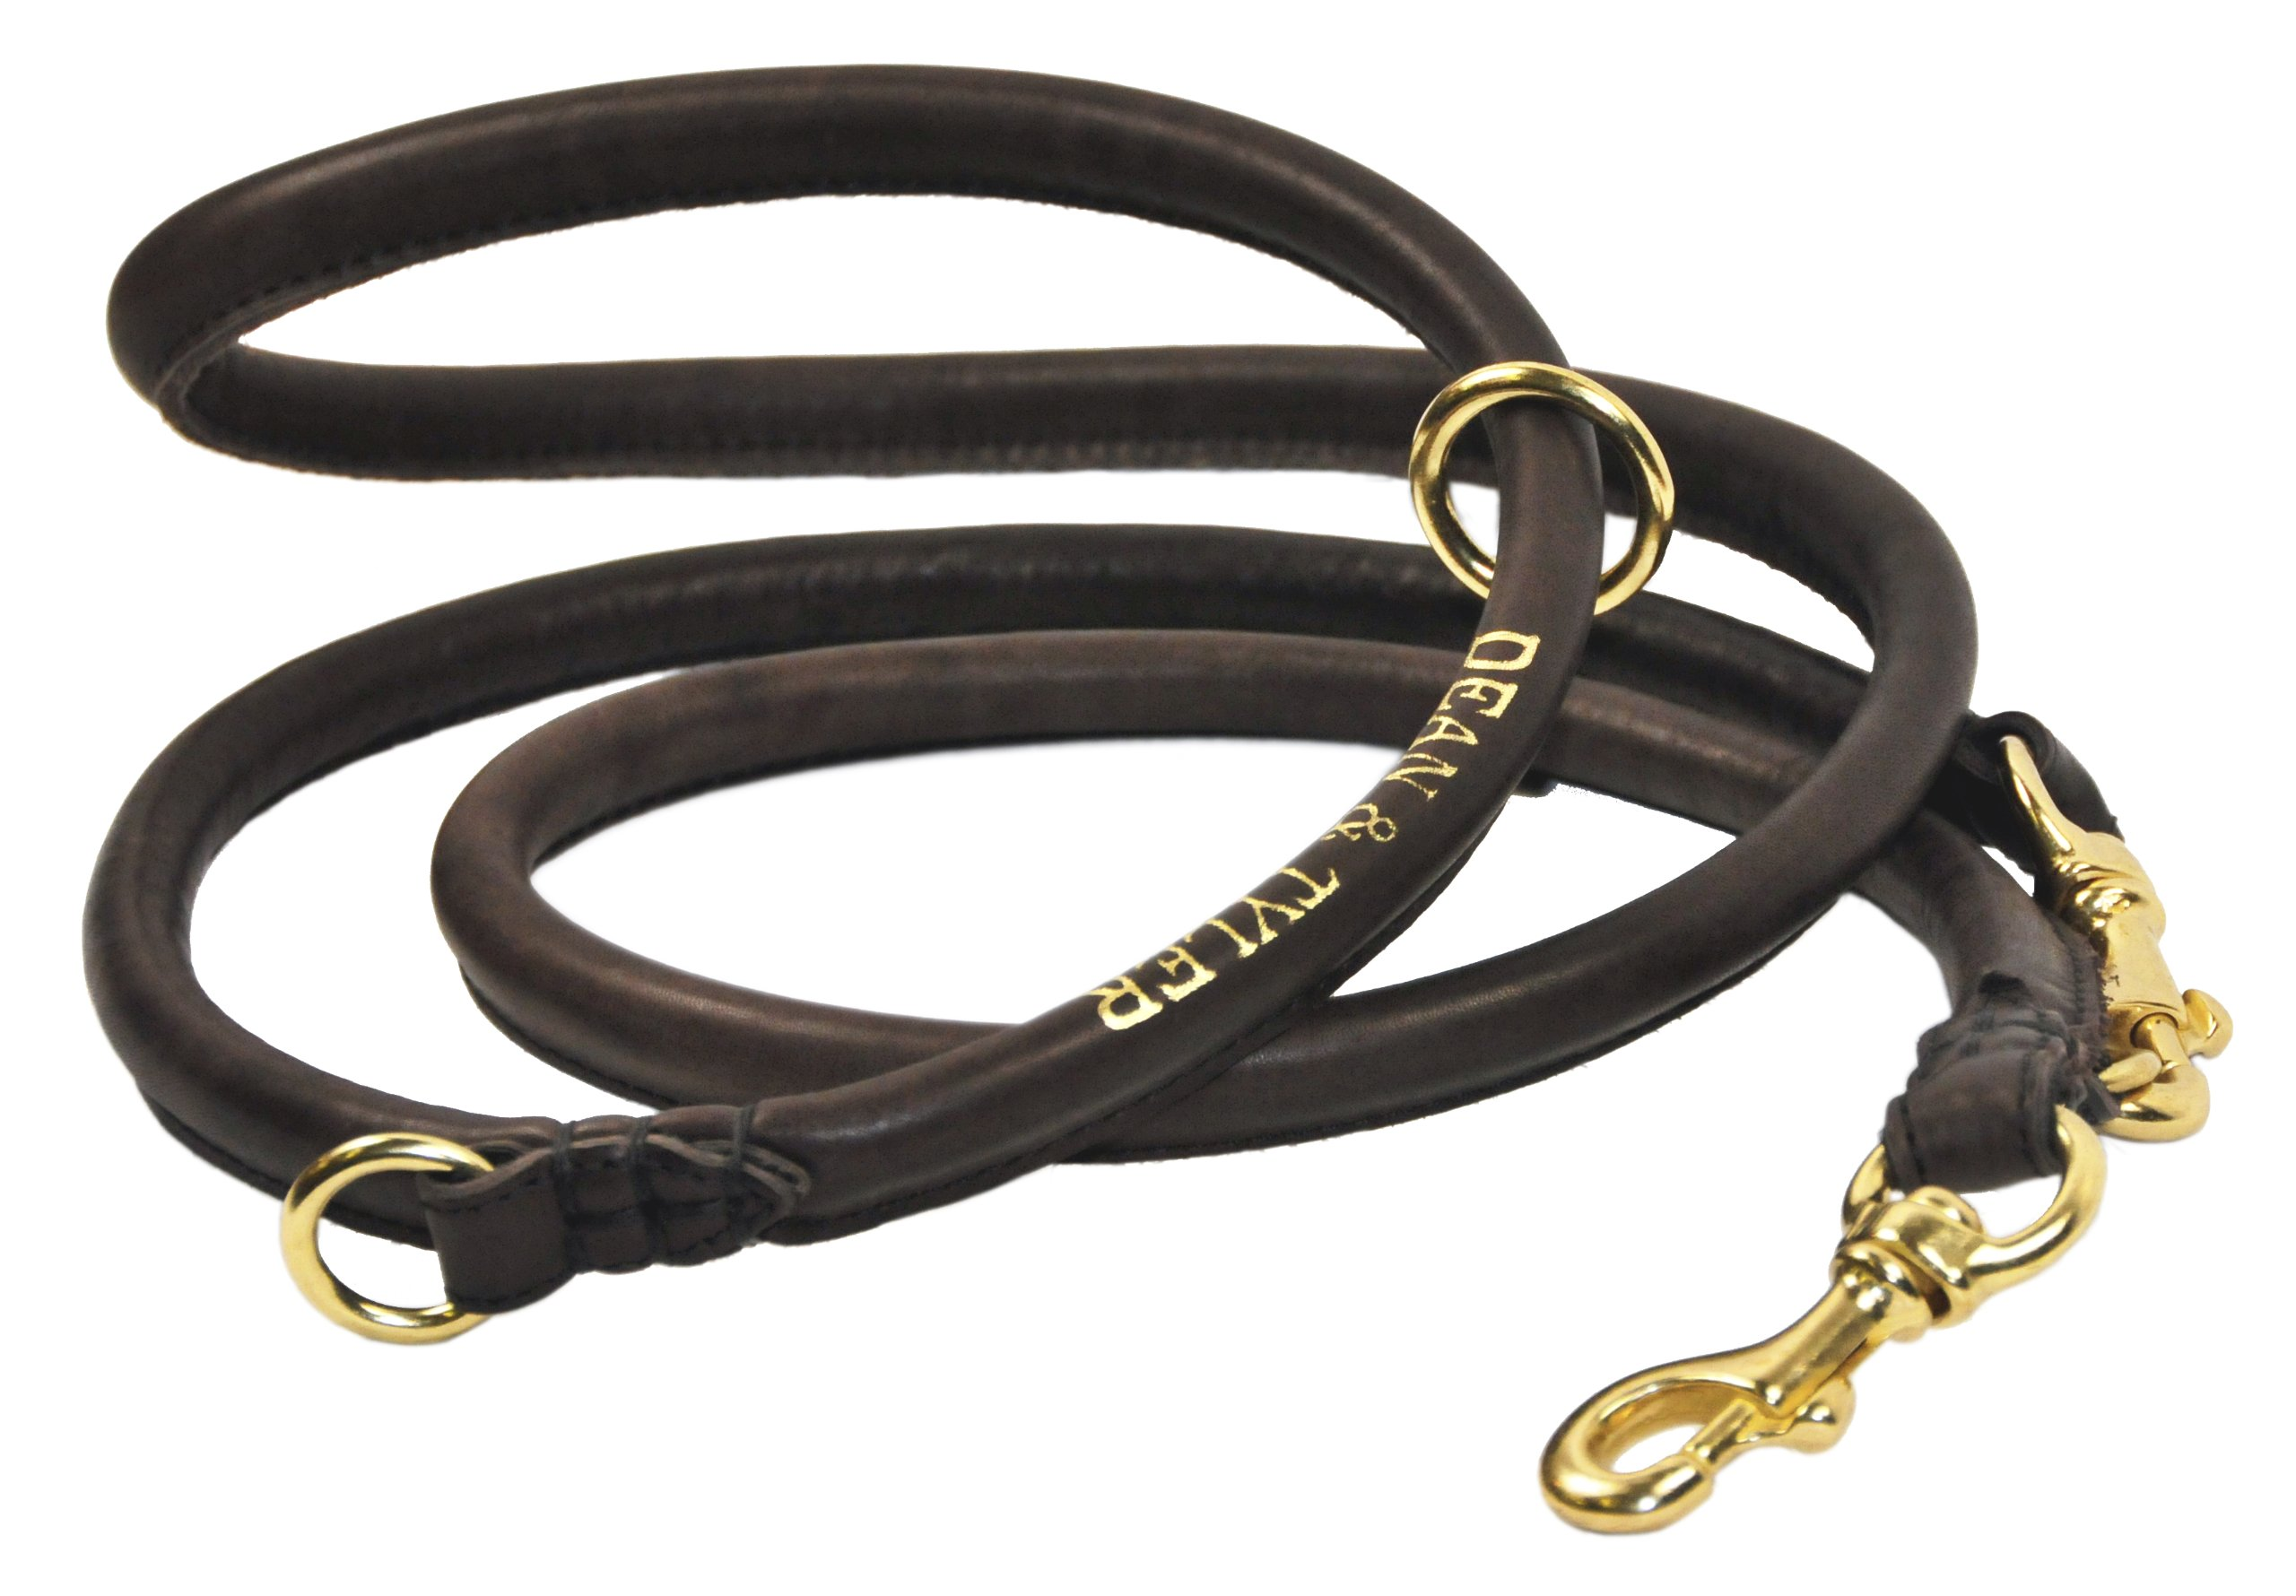 Dean and Tyler Noburu Multifunctional Rolled Leash, Brown 7-Feet by 1/2-Inch Diameter With Handle And Solid Brass Snap Hooks.